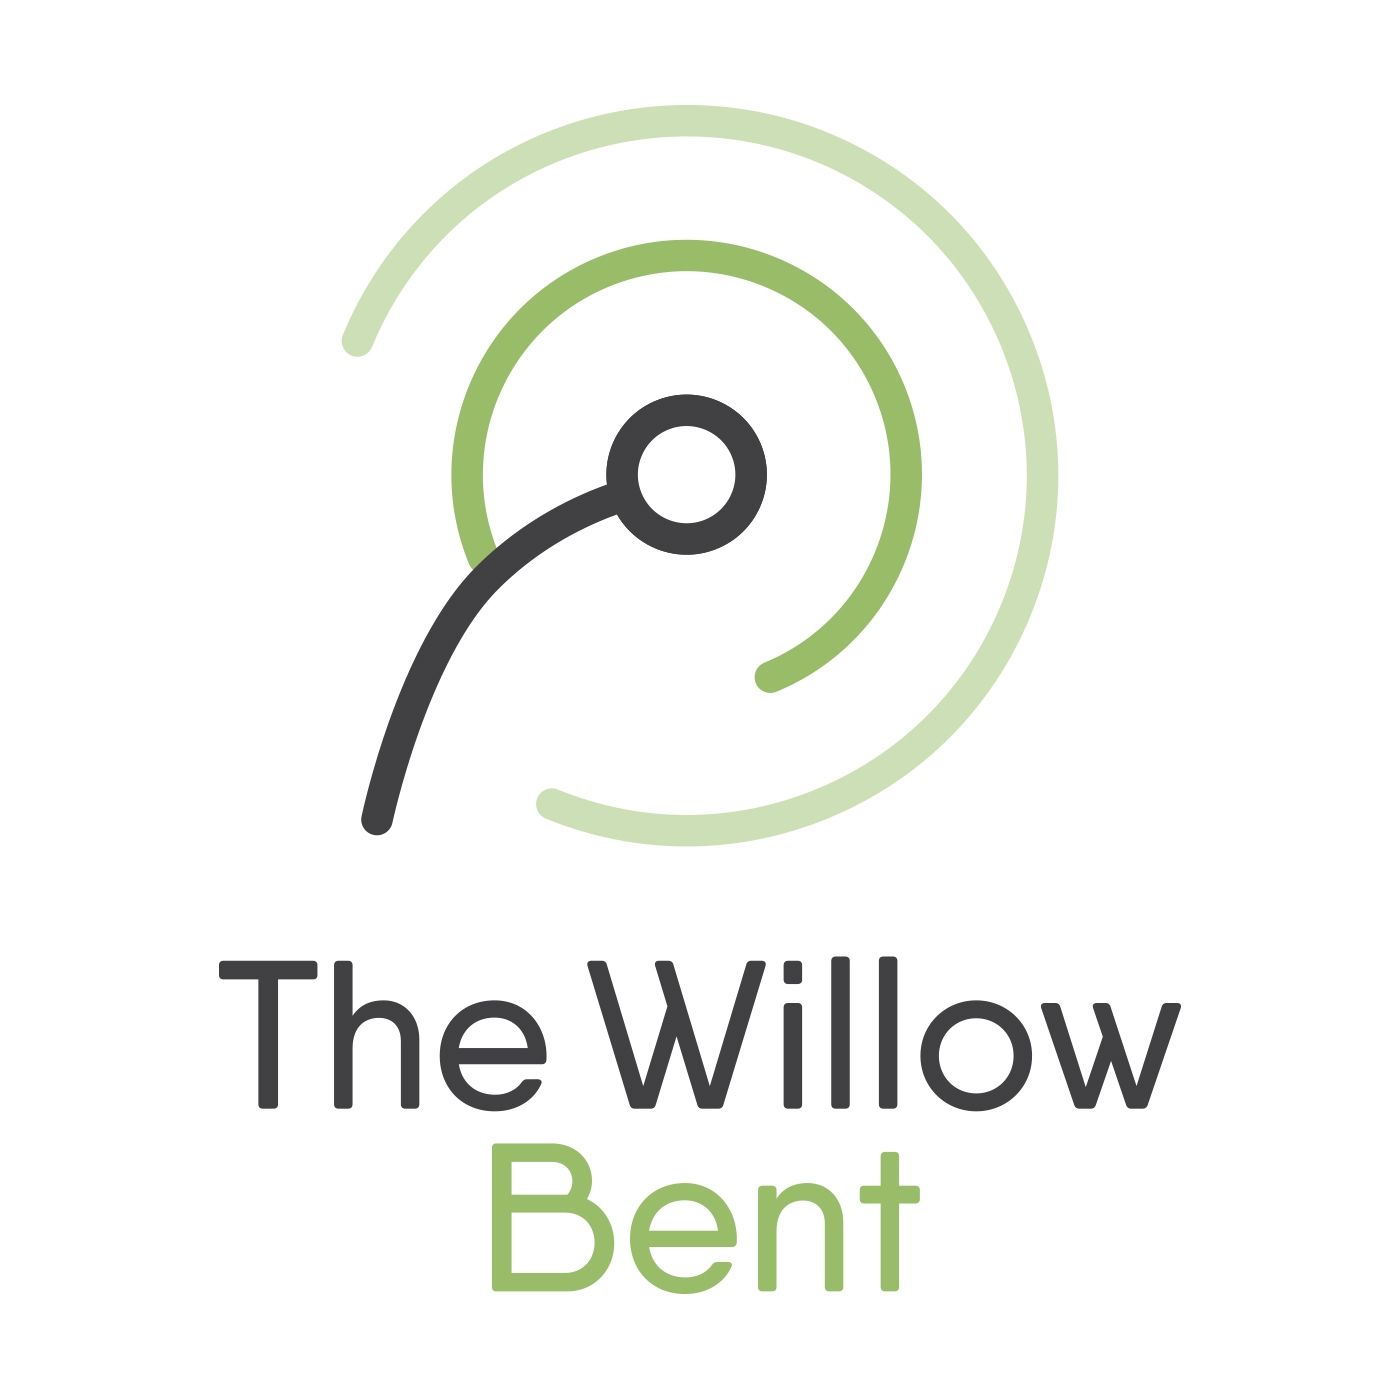 The Willow Bent